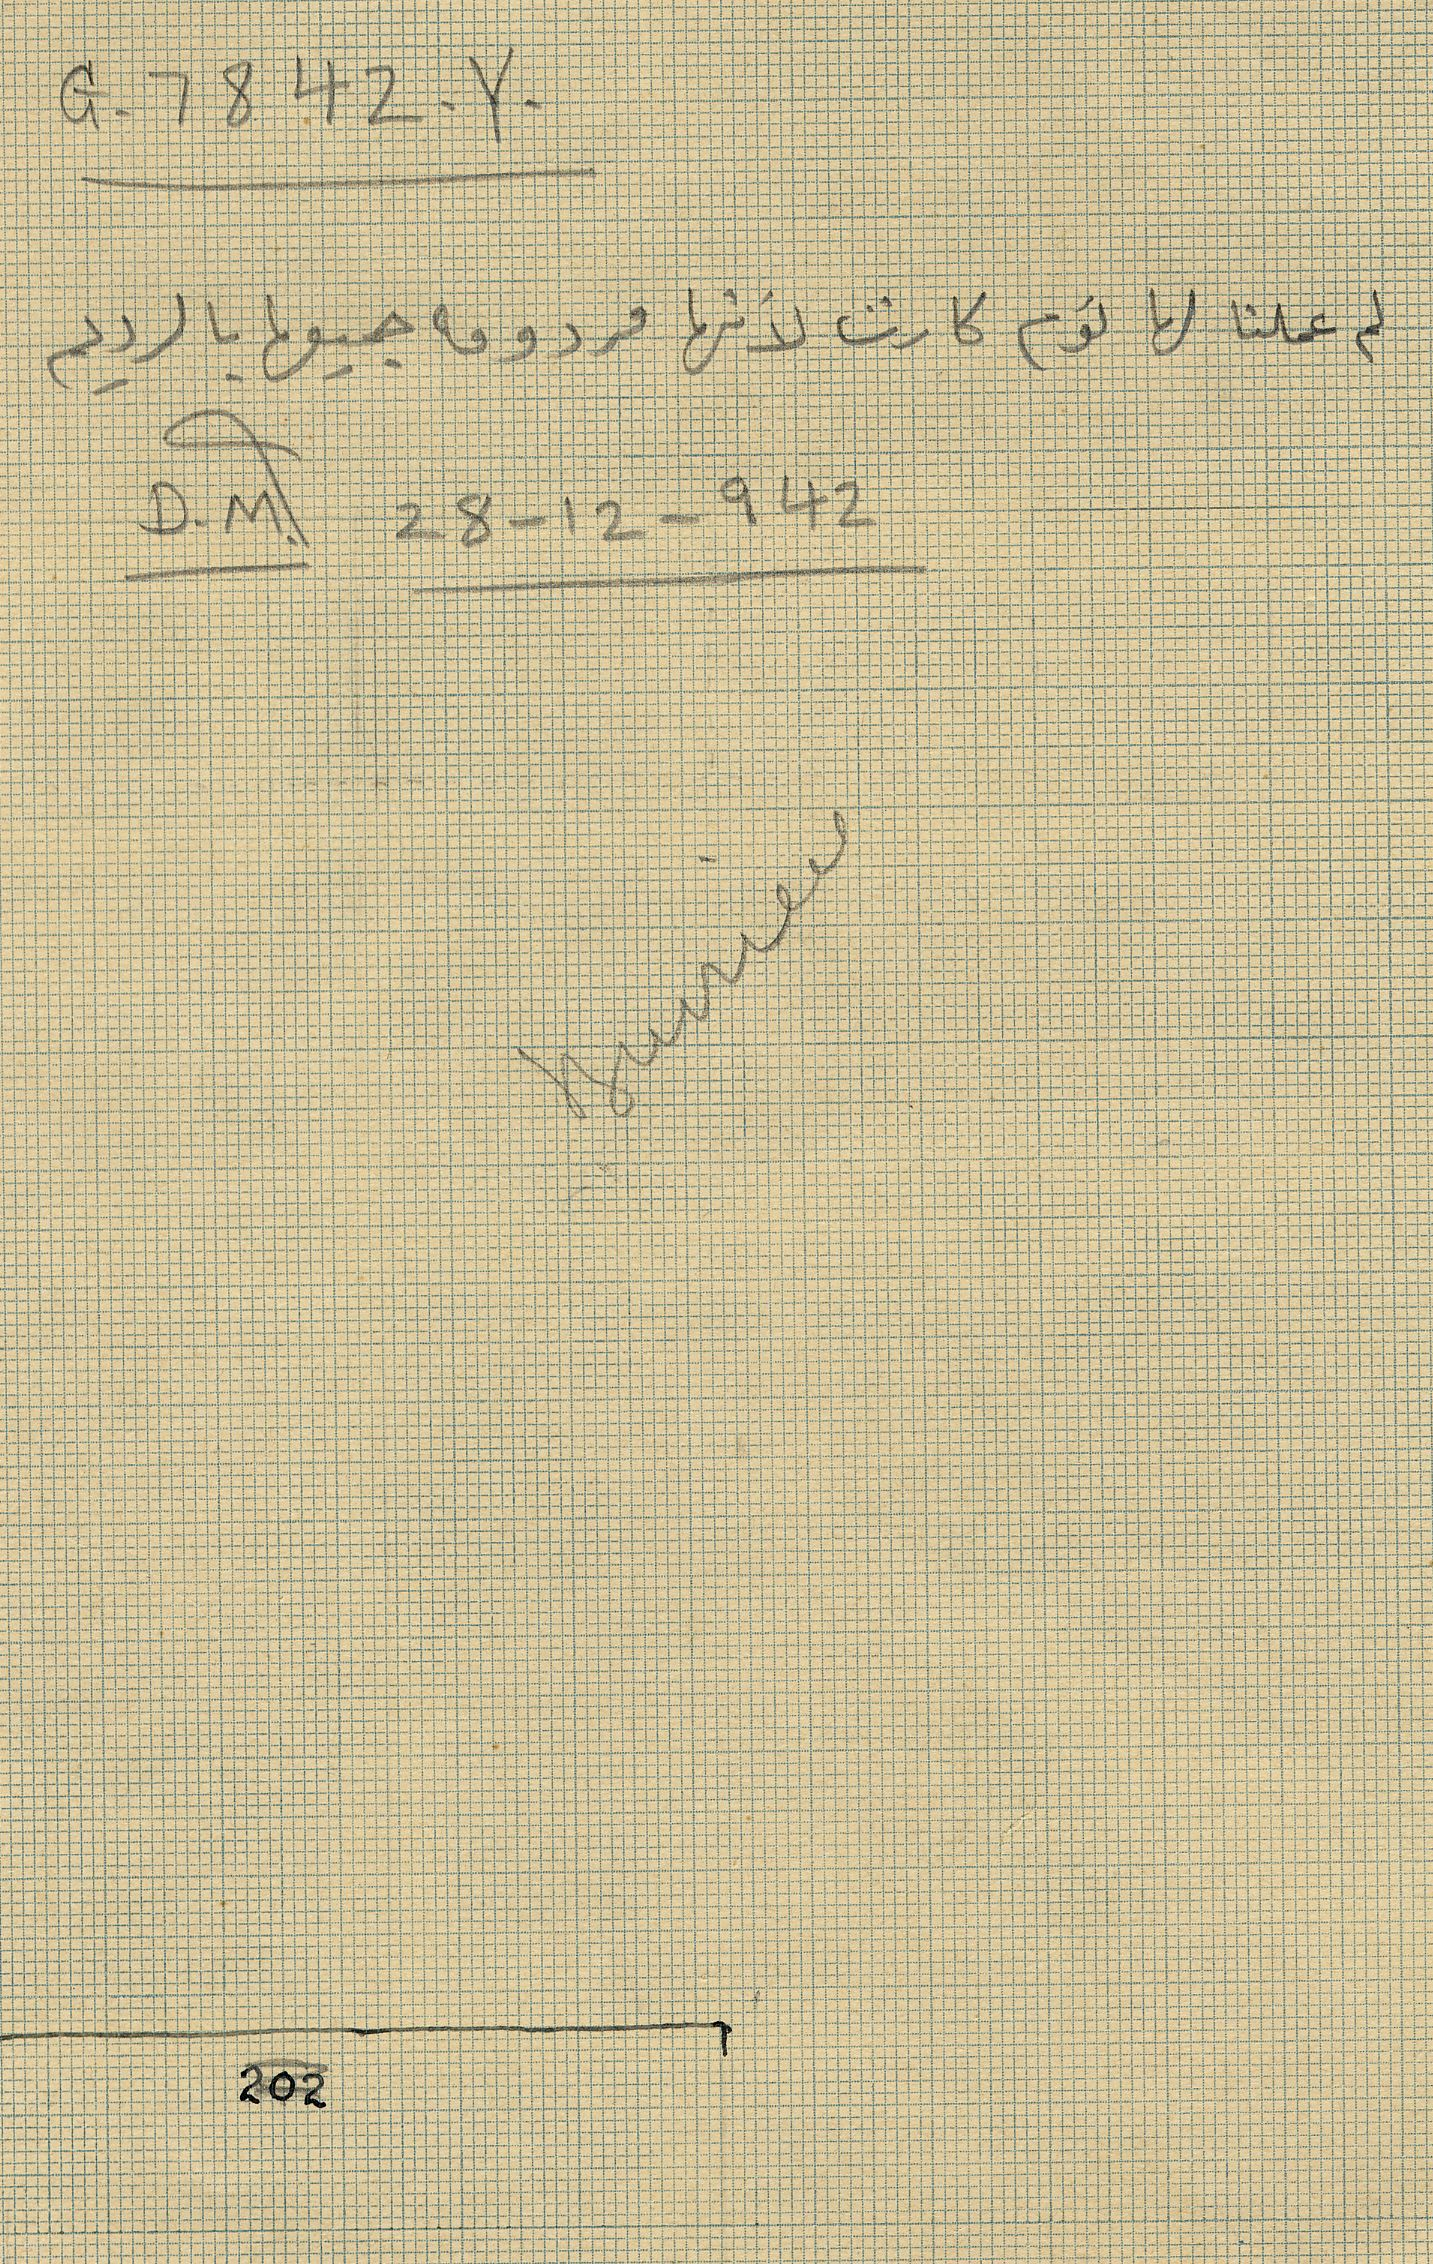 Notes: G 7842, Shaft Y, notes (in Arabic)